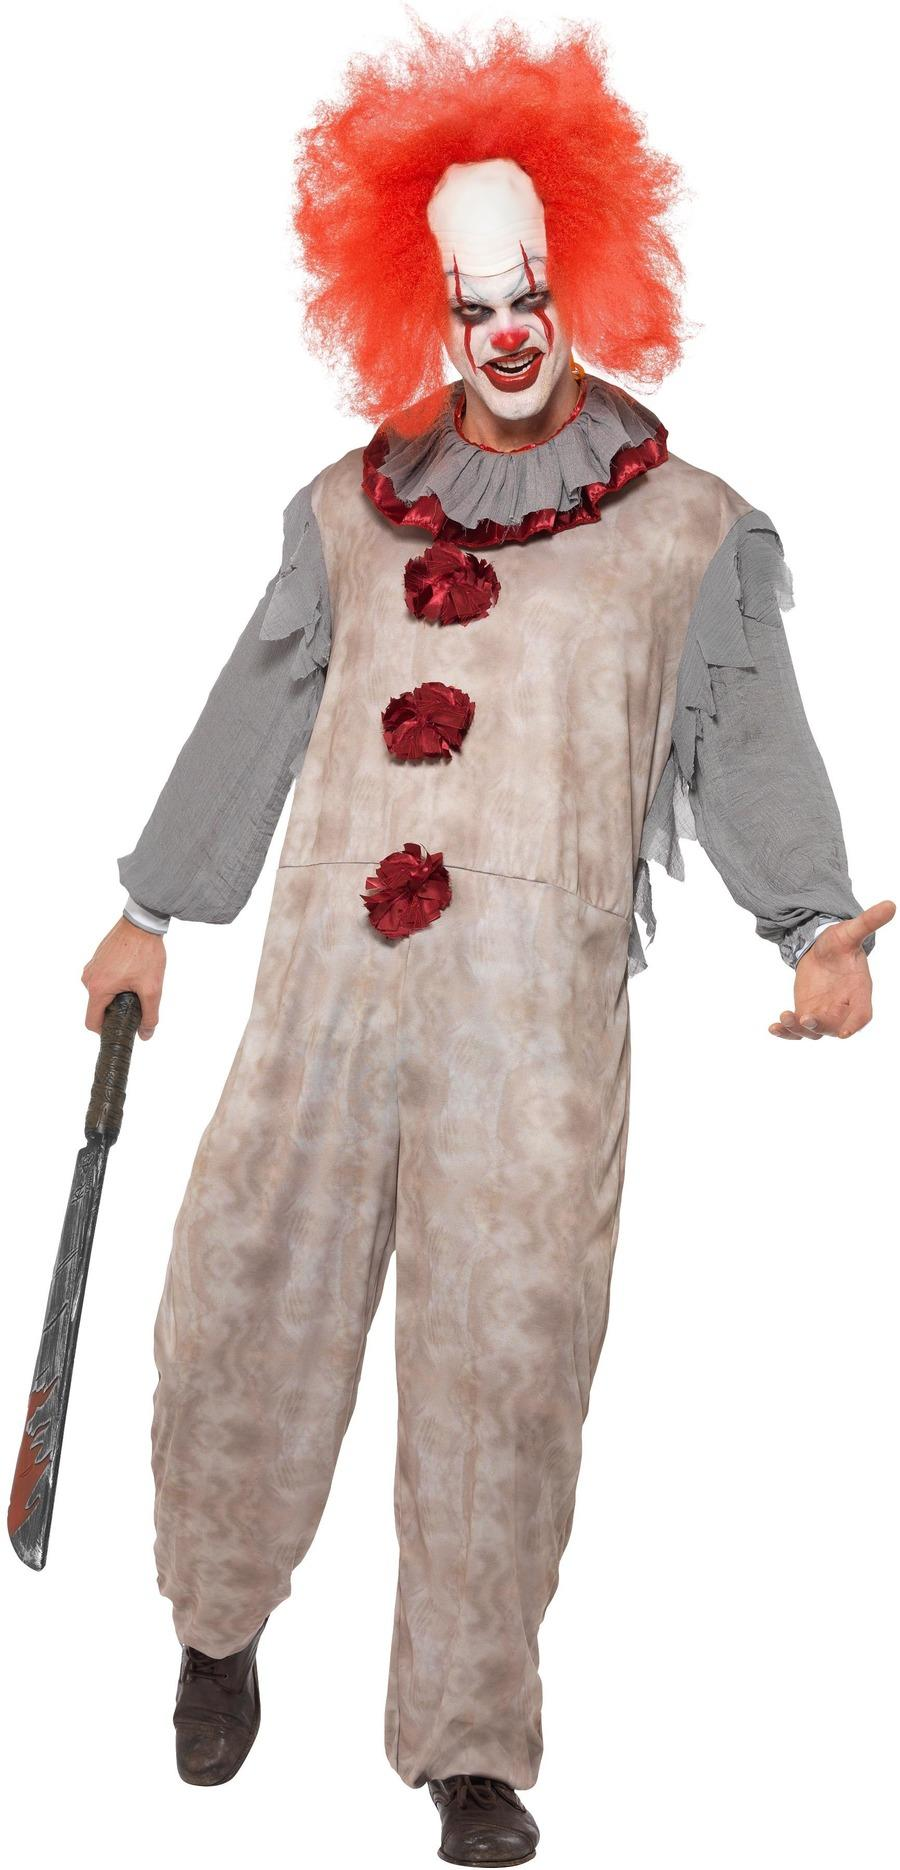 Vintage Clown Costume Adult Male